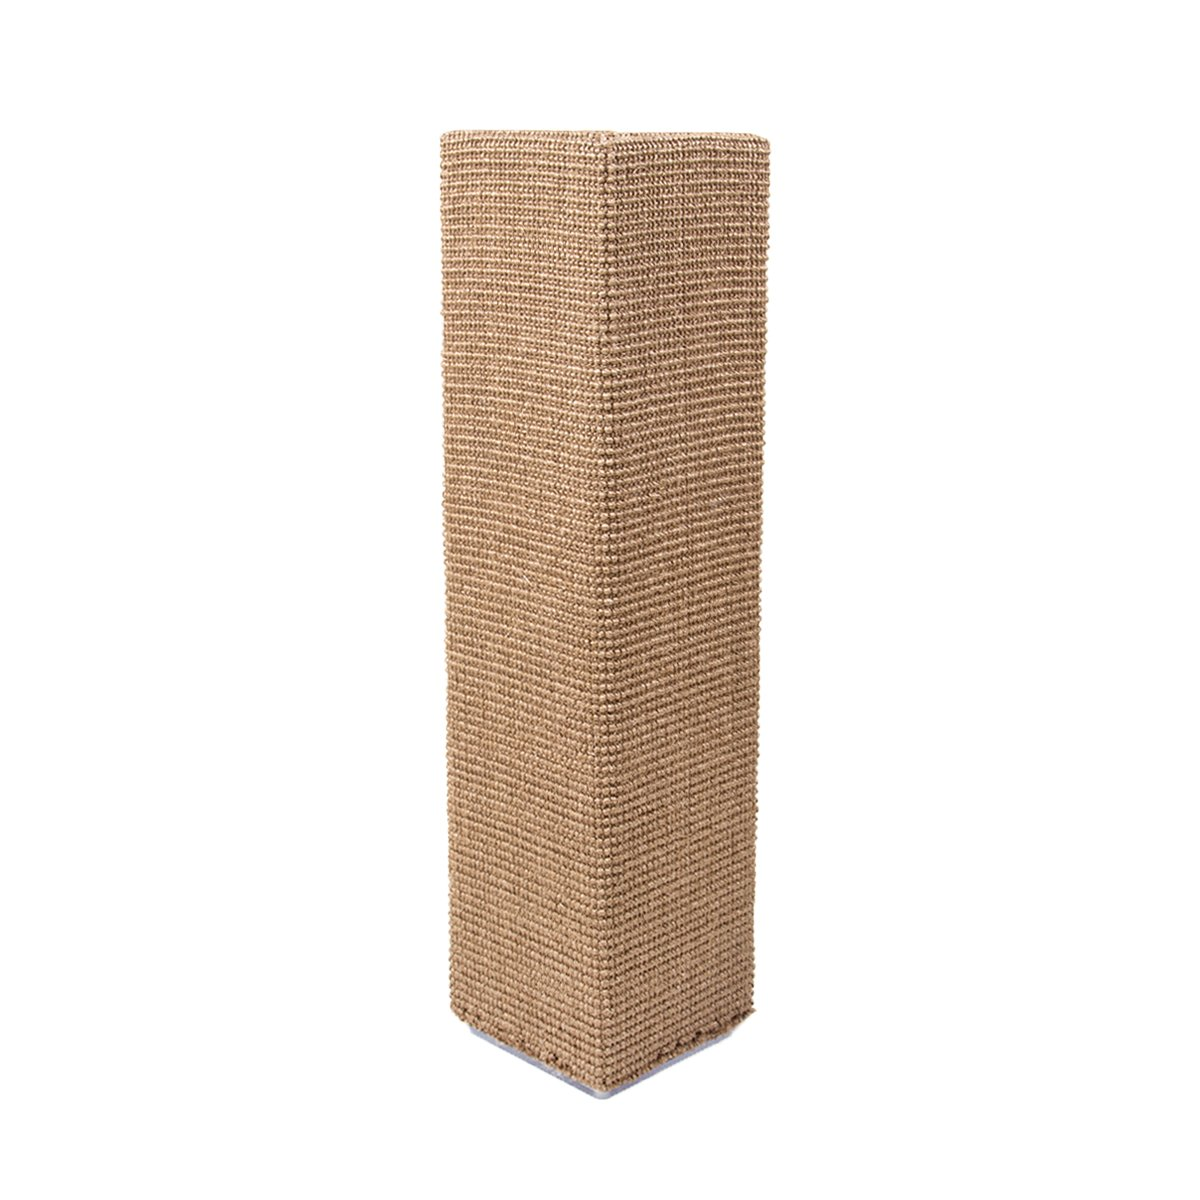 'Sofa-Scratcher Squared' Cat Scratching Post & Couch-Corner / Furniture Protector CatTrees